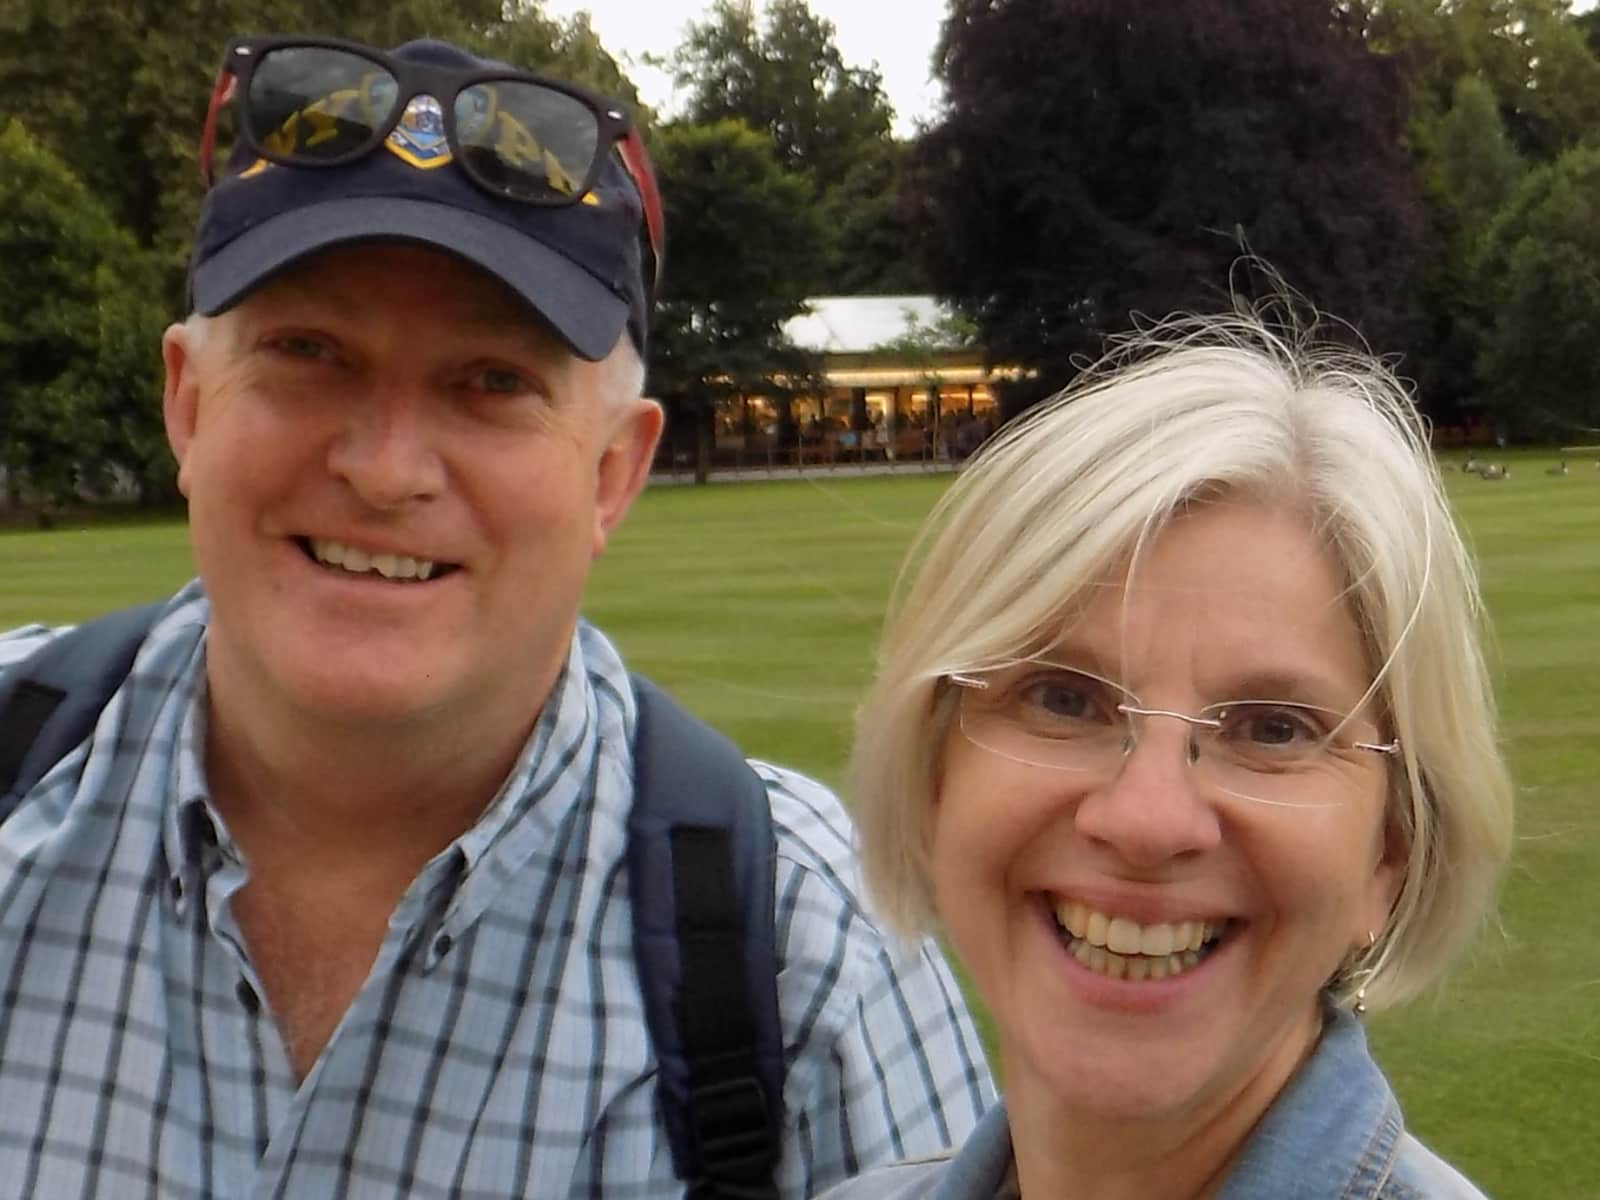 Nigel & gillian & Gillian from Bury St Edmunds, United Kingdom